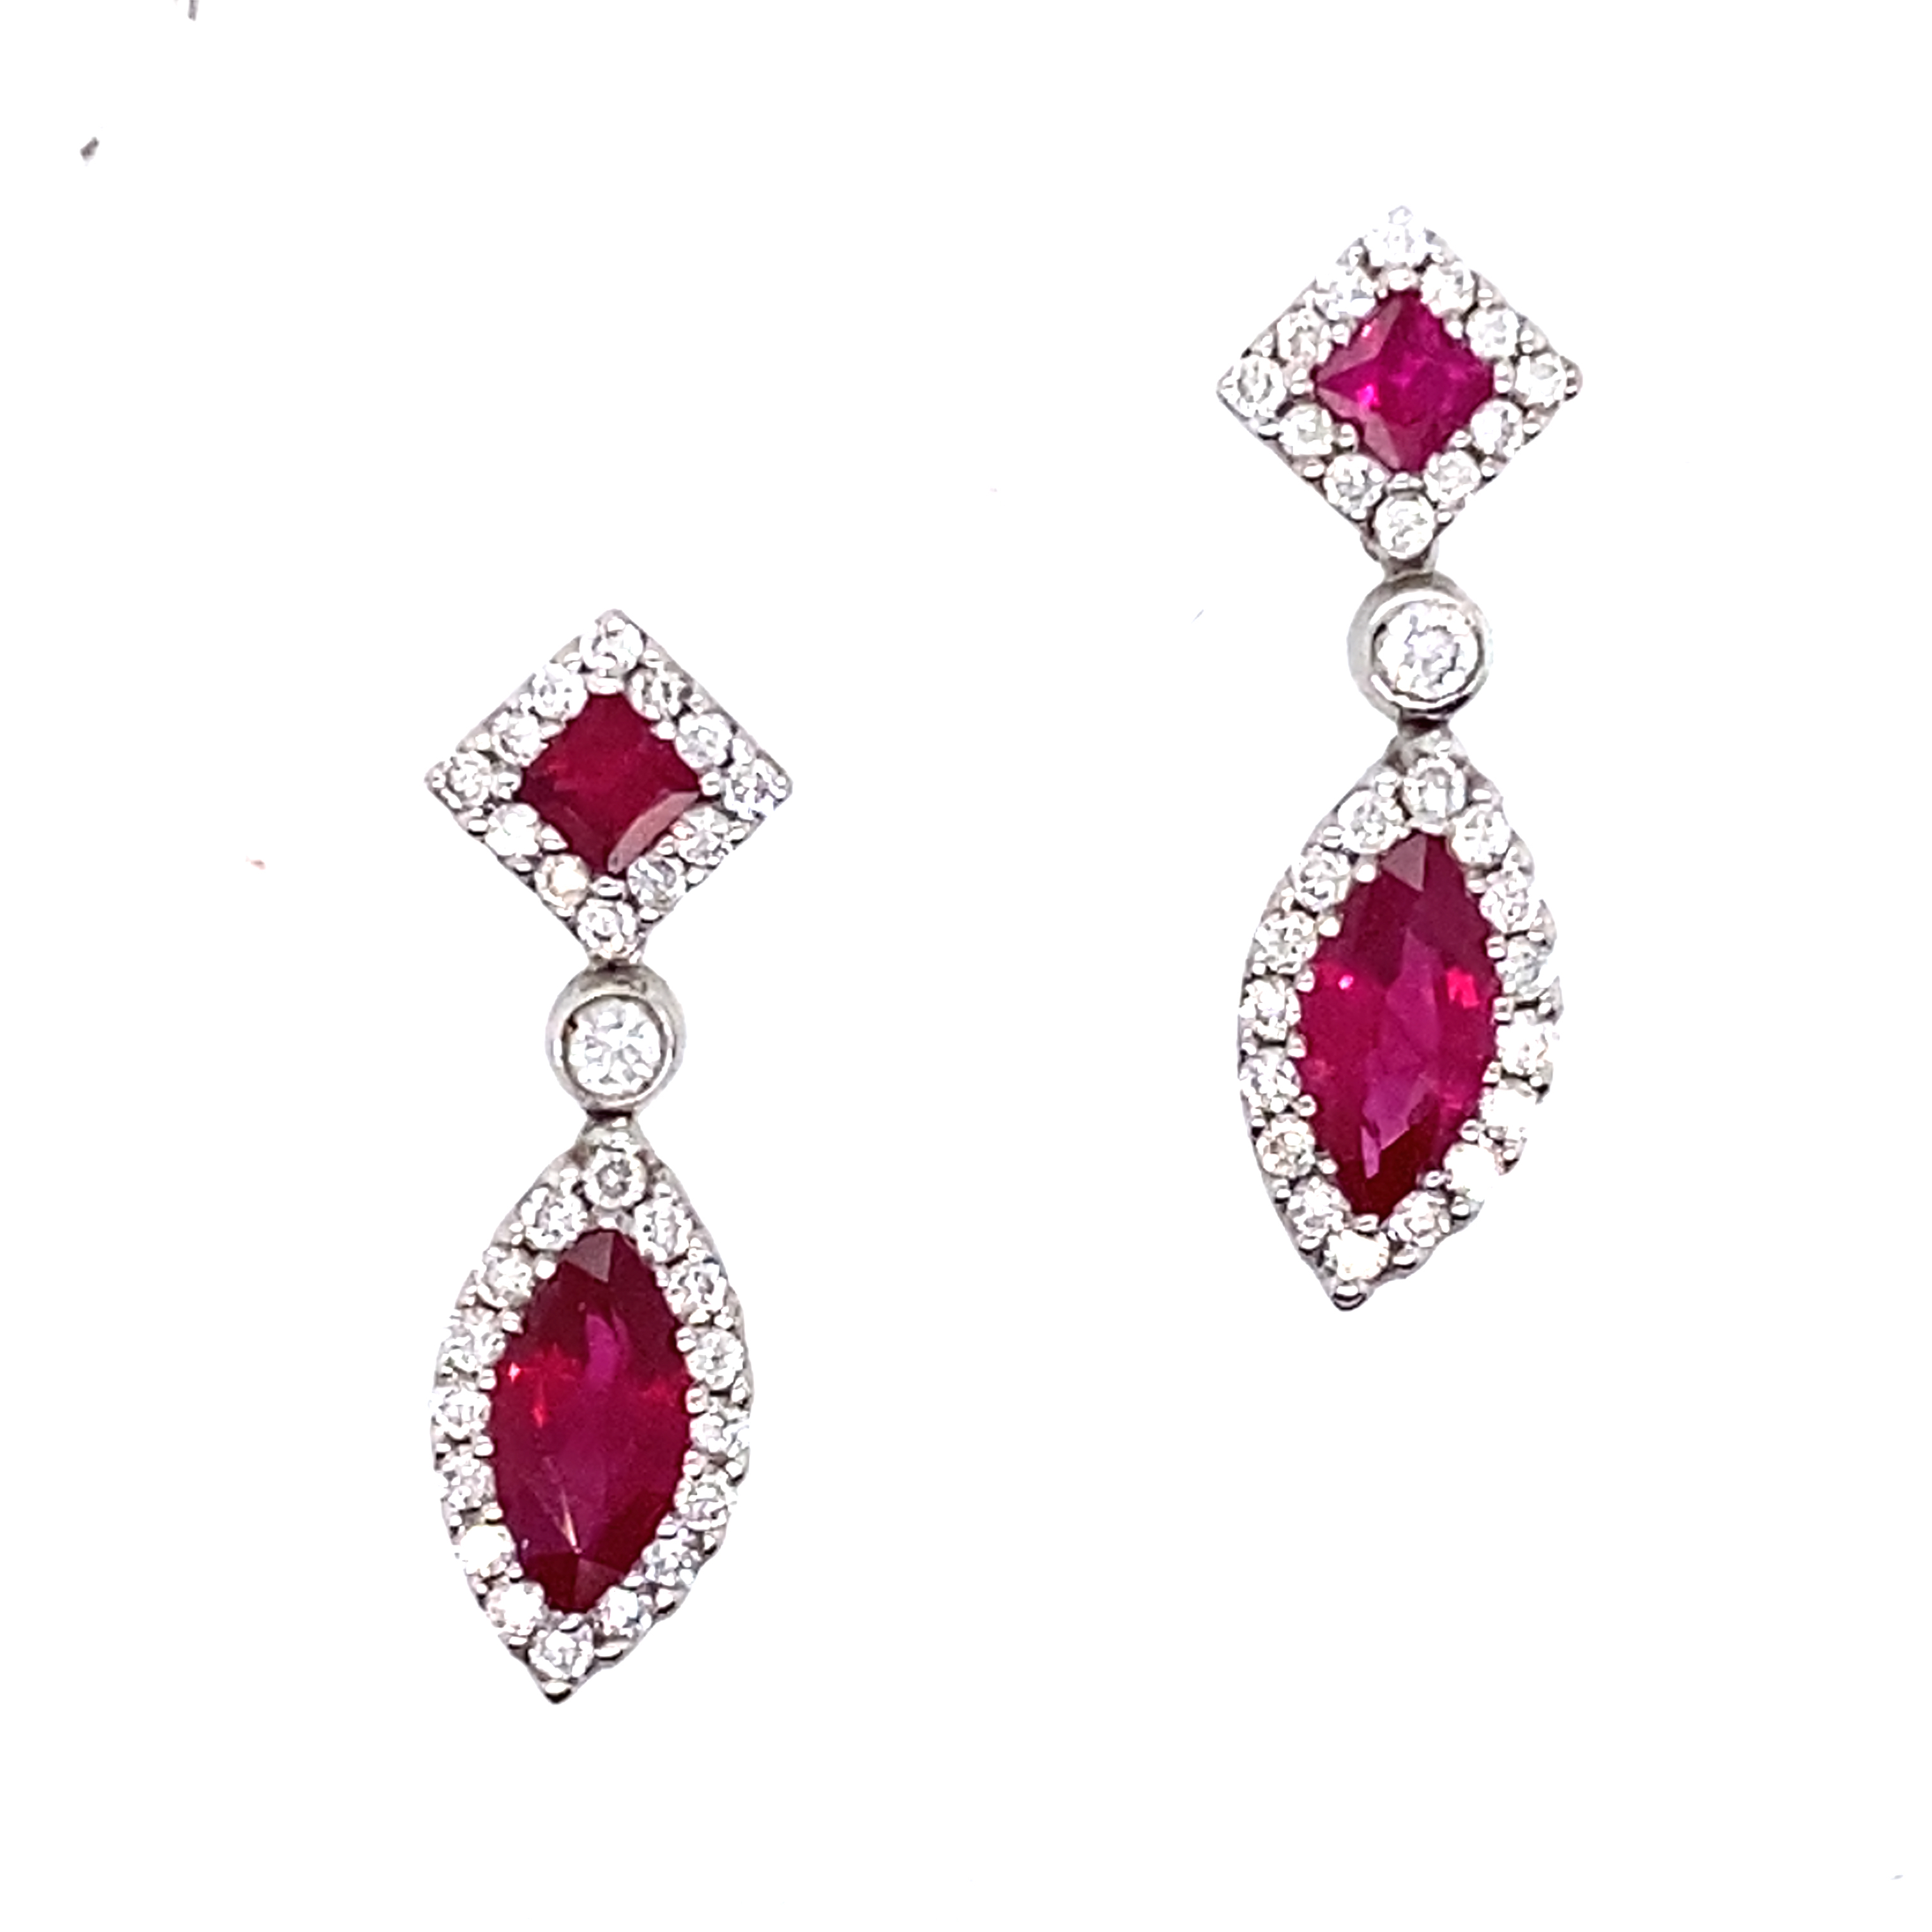 18ct White Gold Ruby and Diamond Dangly Earrings